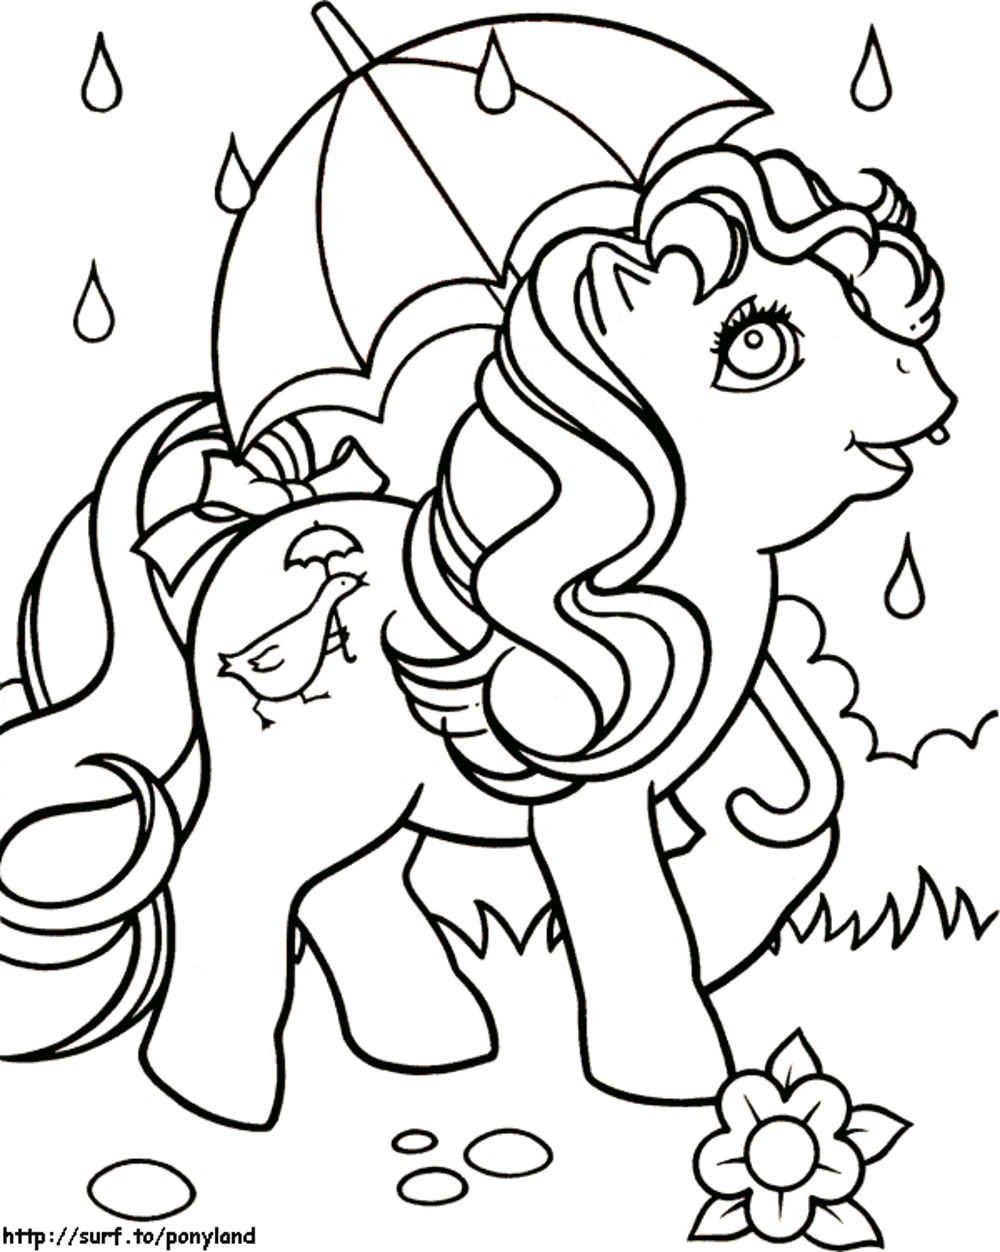 My Little Pony Coloring Pages Printable Kids Colouring Pages My Little Pony Coloring Kids Printable Coloring Pages Cartoon Coloring Pages